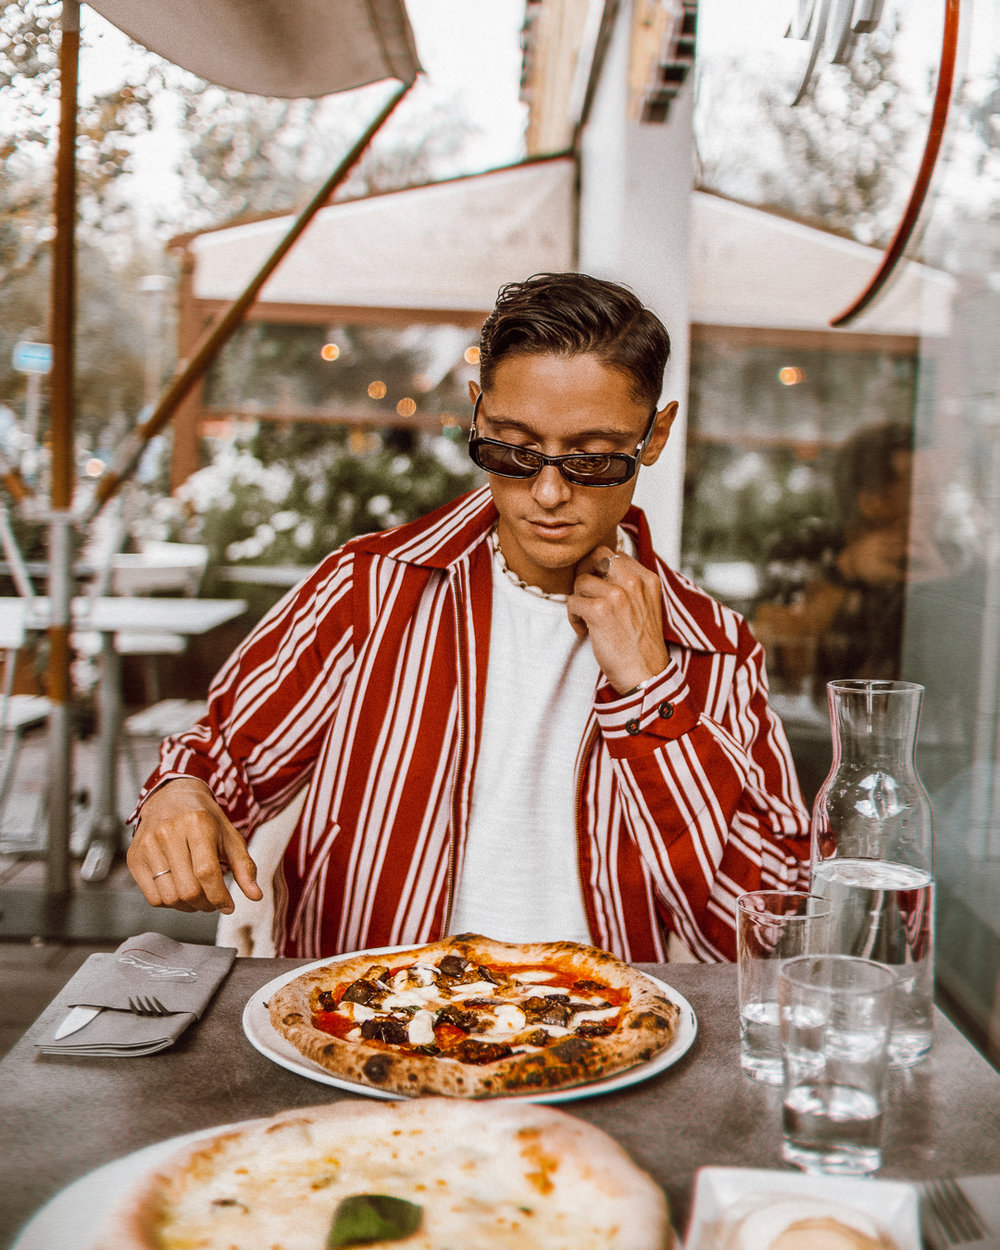 ◎ My favourite aubergine pizza from Giro Stockholm